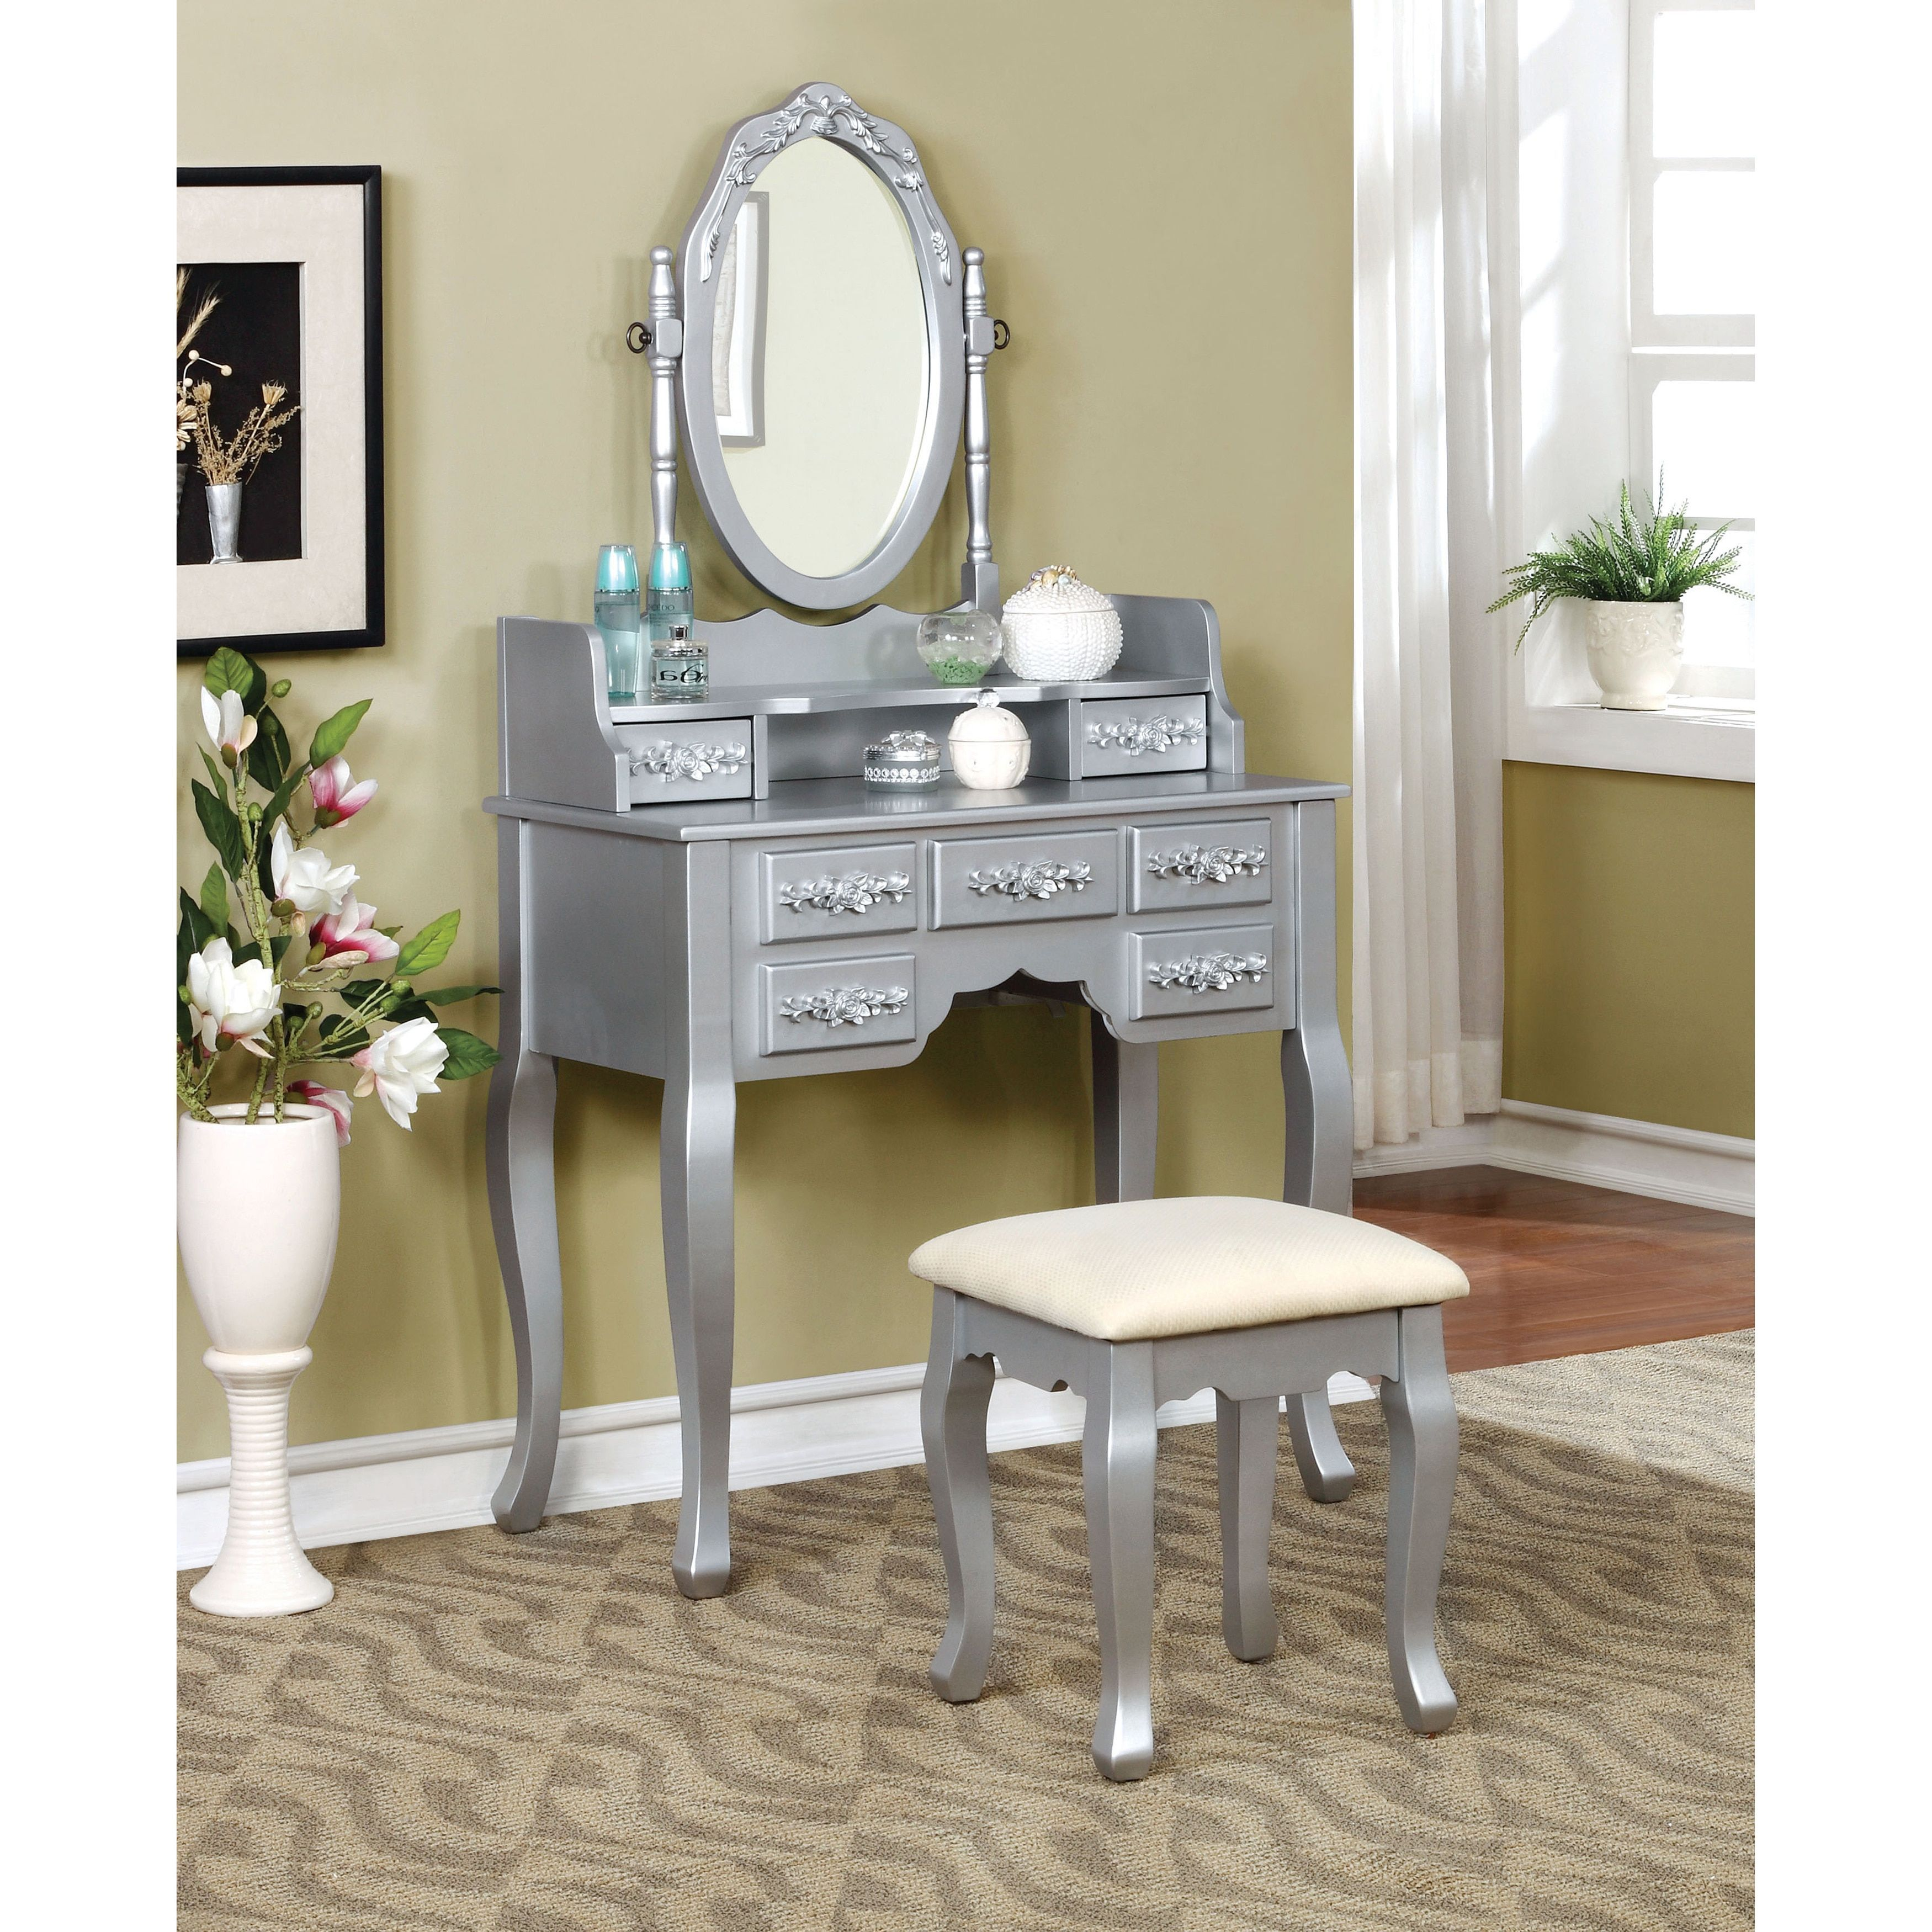 Furniture of america mayla elegant traditional piece vanity table